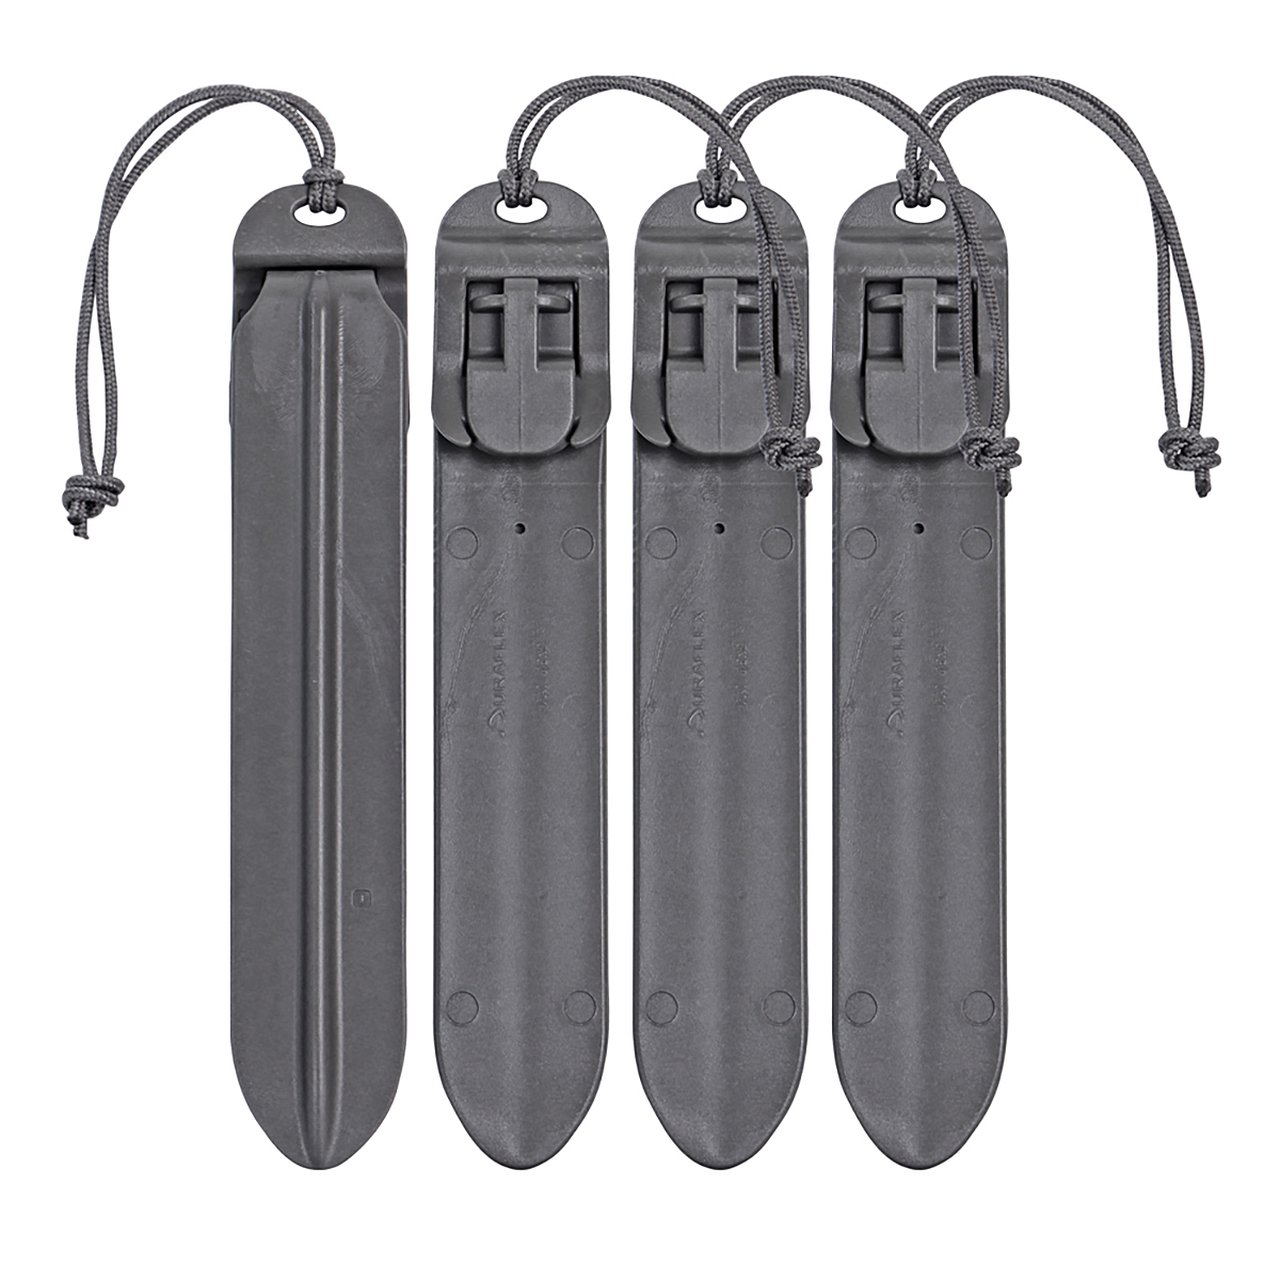 5 MOLLE STICKS (4-Pack) - Wolf Grey